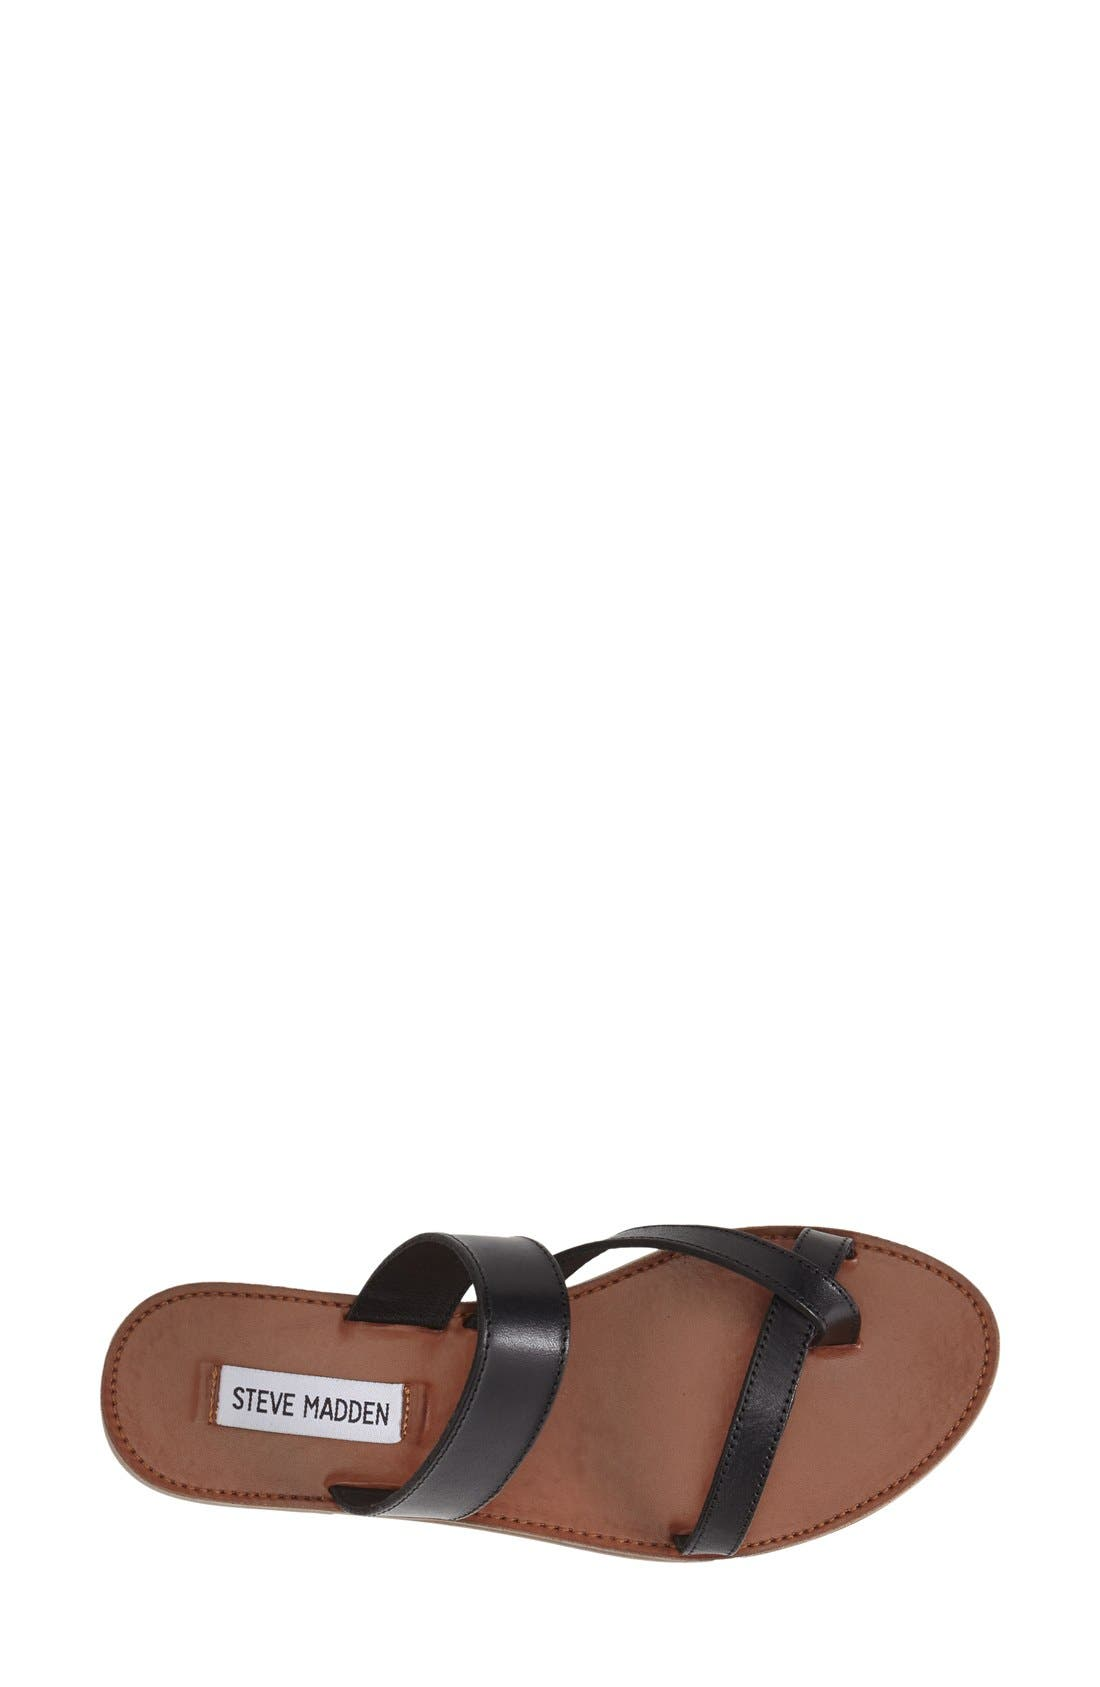 'Aintso' Strappy Leather Toe Ring Sandal,                             Alternate thumbnail 3, color,                             001